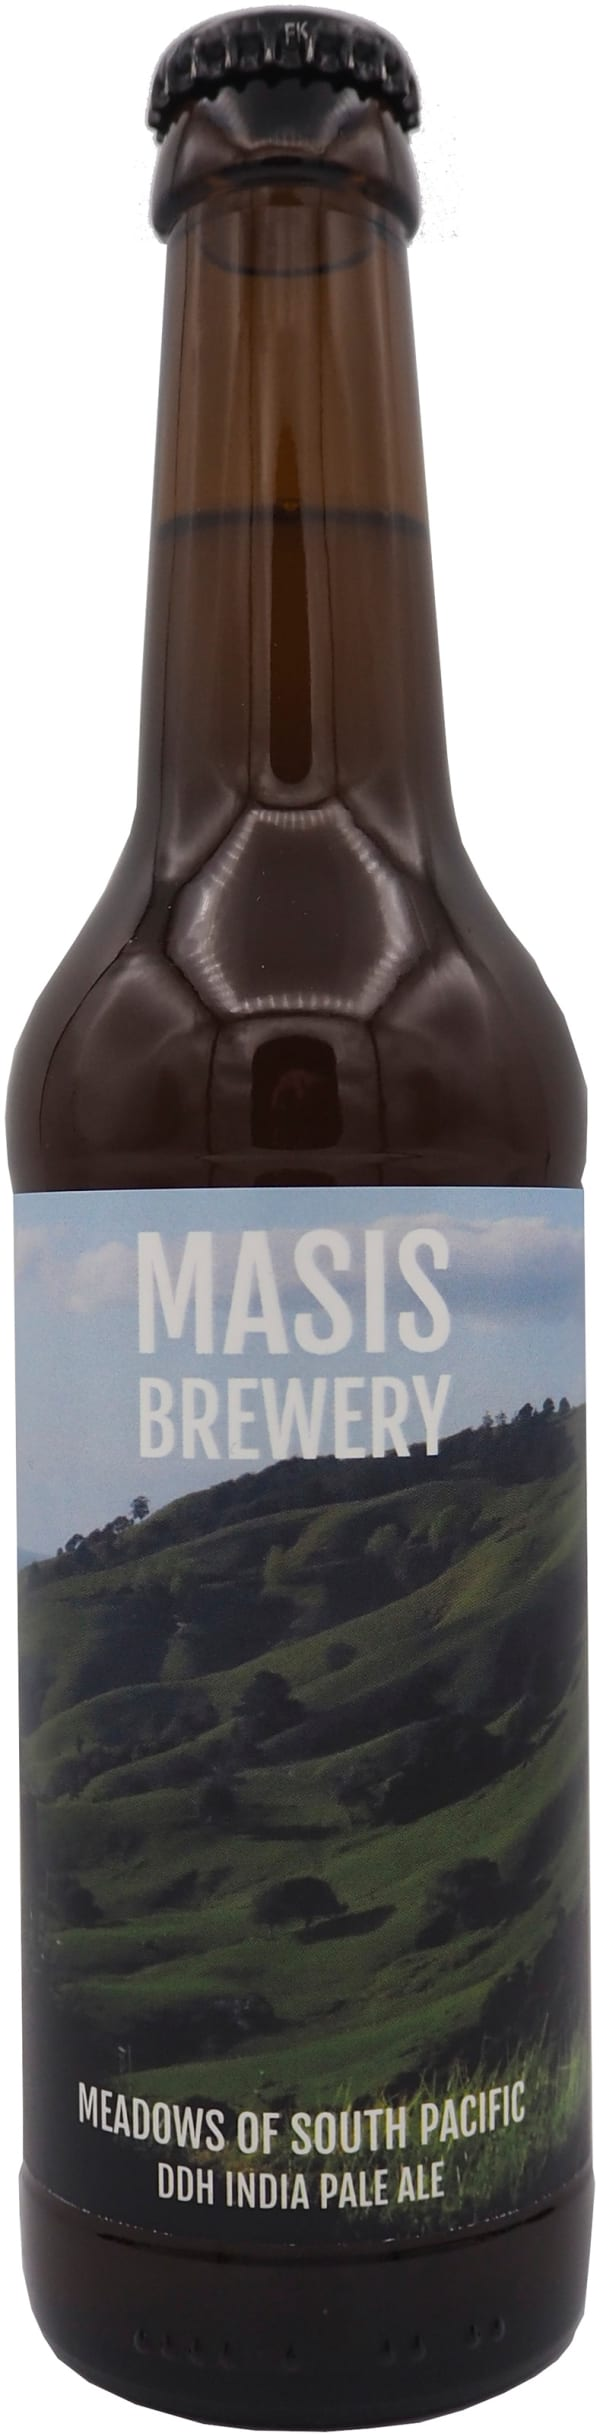 Masis Meadows of South Pacific DDH IPA